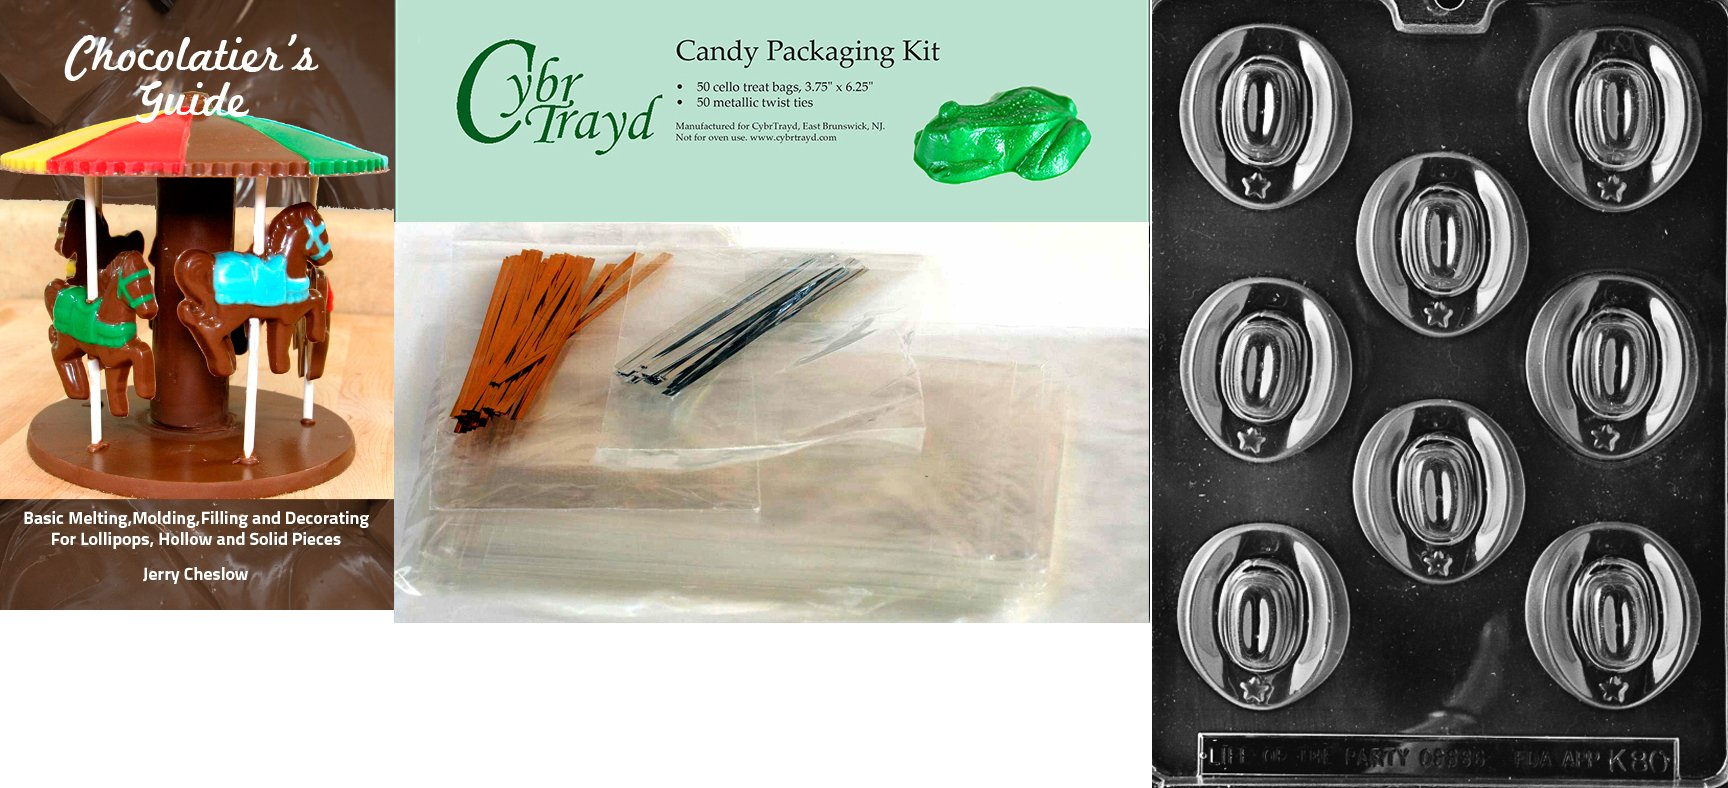 Cybrtrayd 'Cowboy Hats Kids' Chocolate Candy Mold with Chocolatier's Bundle of 50 Cello Bags, 25 Gold and 25 Silver Twist Ties and Chocolate Molding Instructions